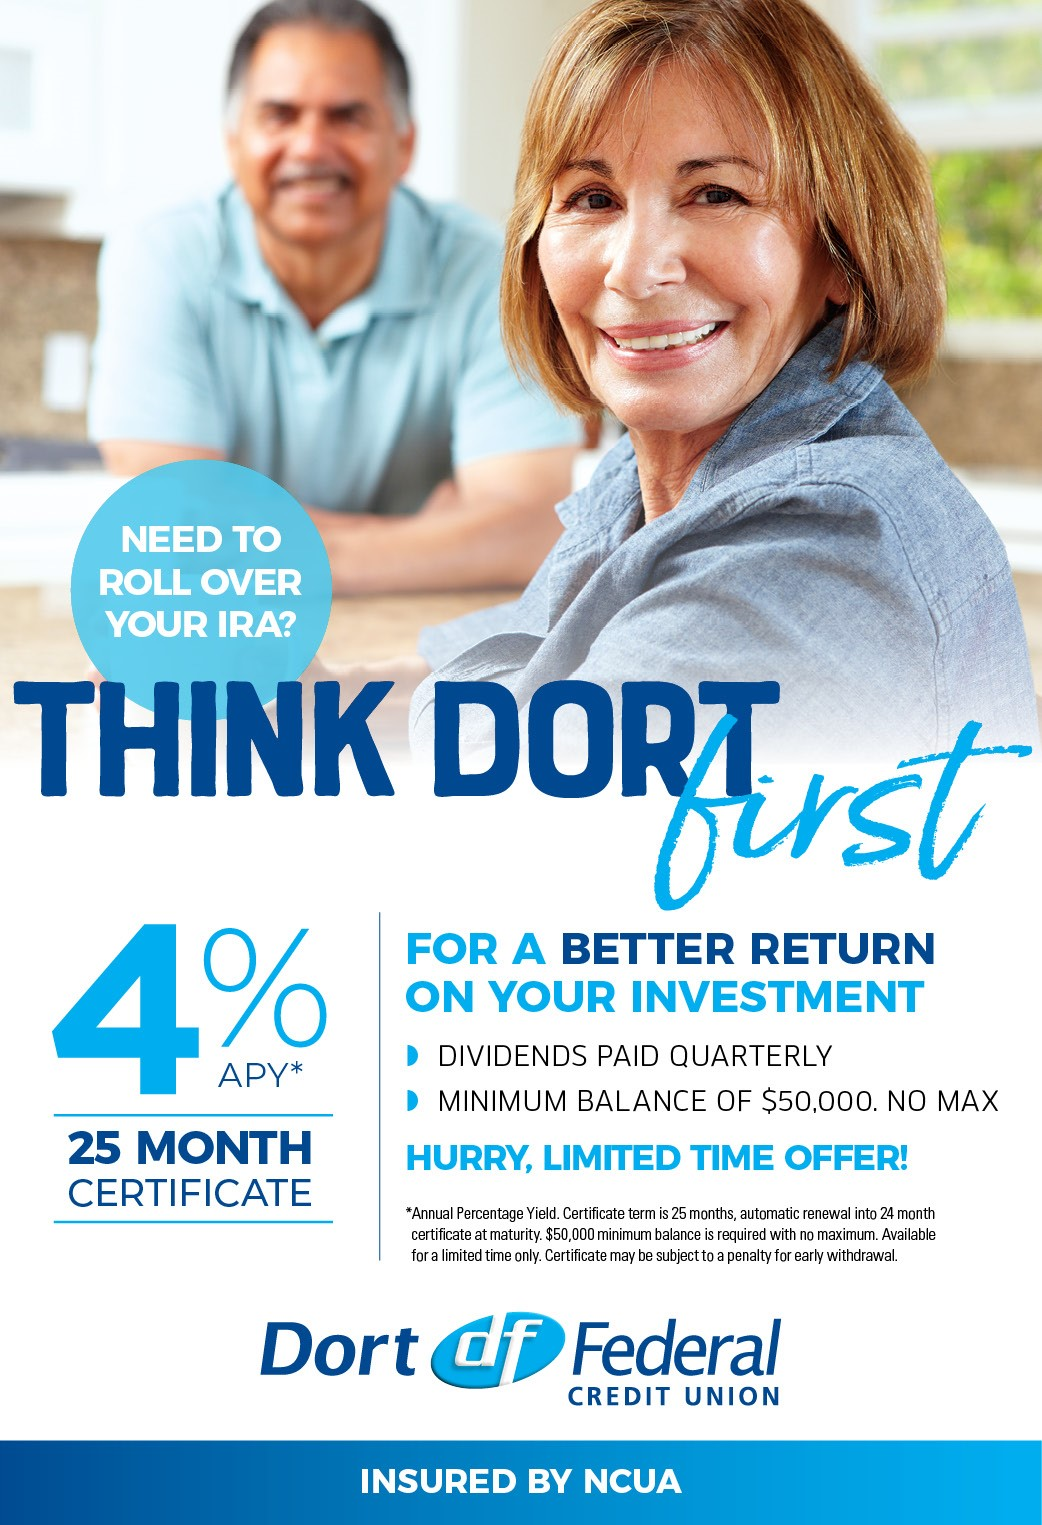 Need to Roll Over Your IRA - Think Dort First